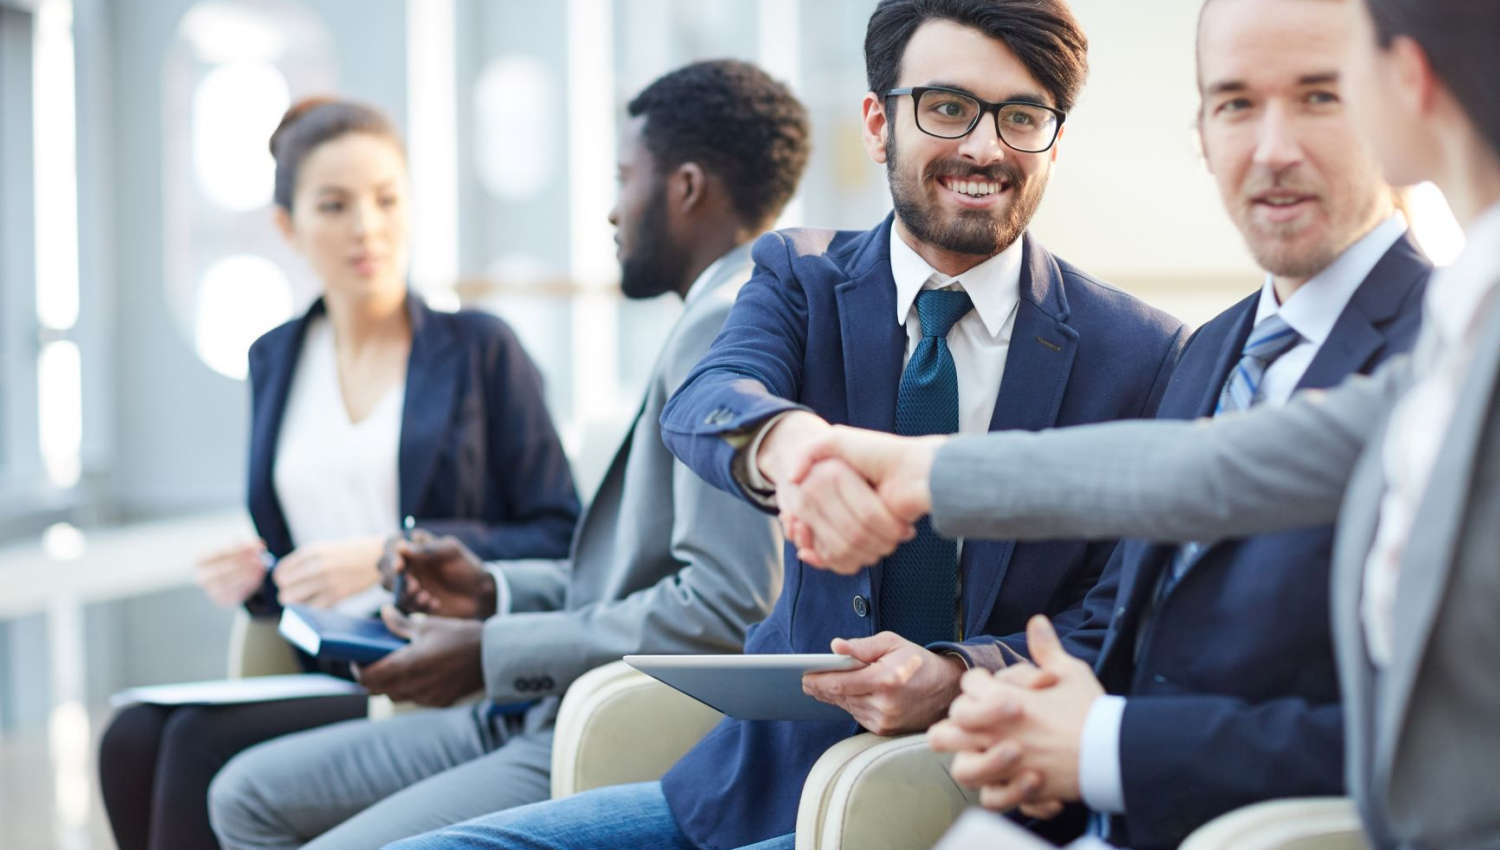 4 Simple Steps To Make A Good Impression In A Job Interview